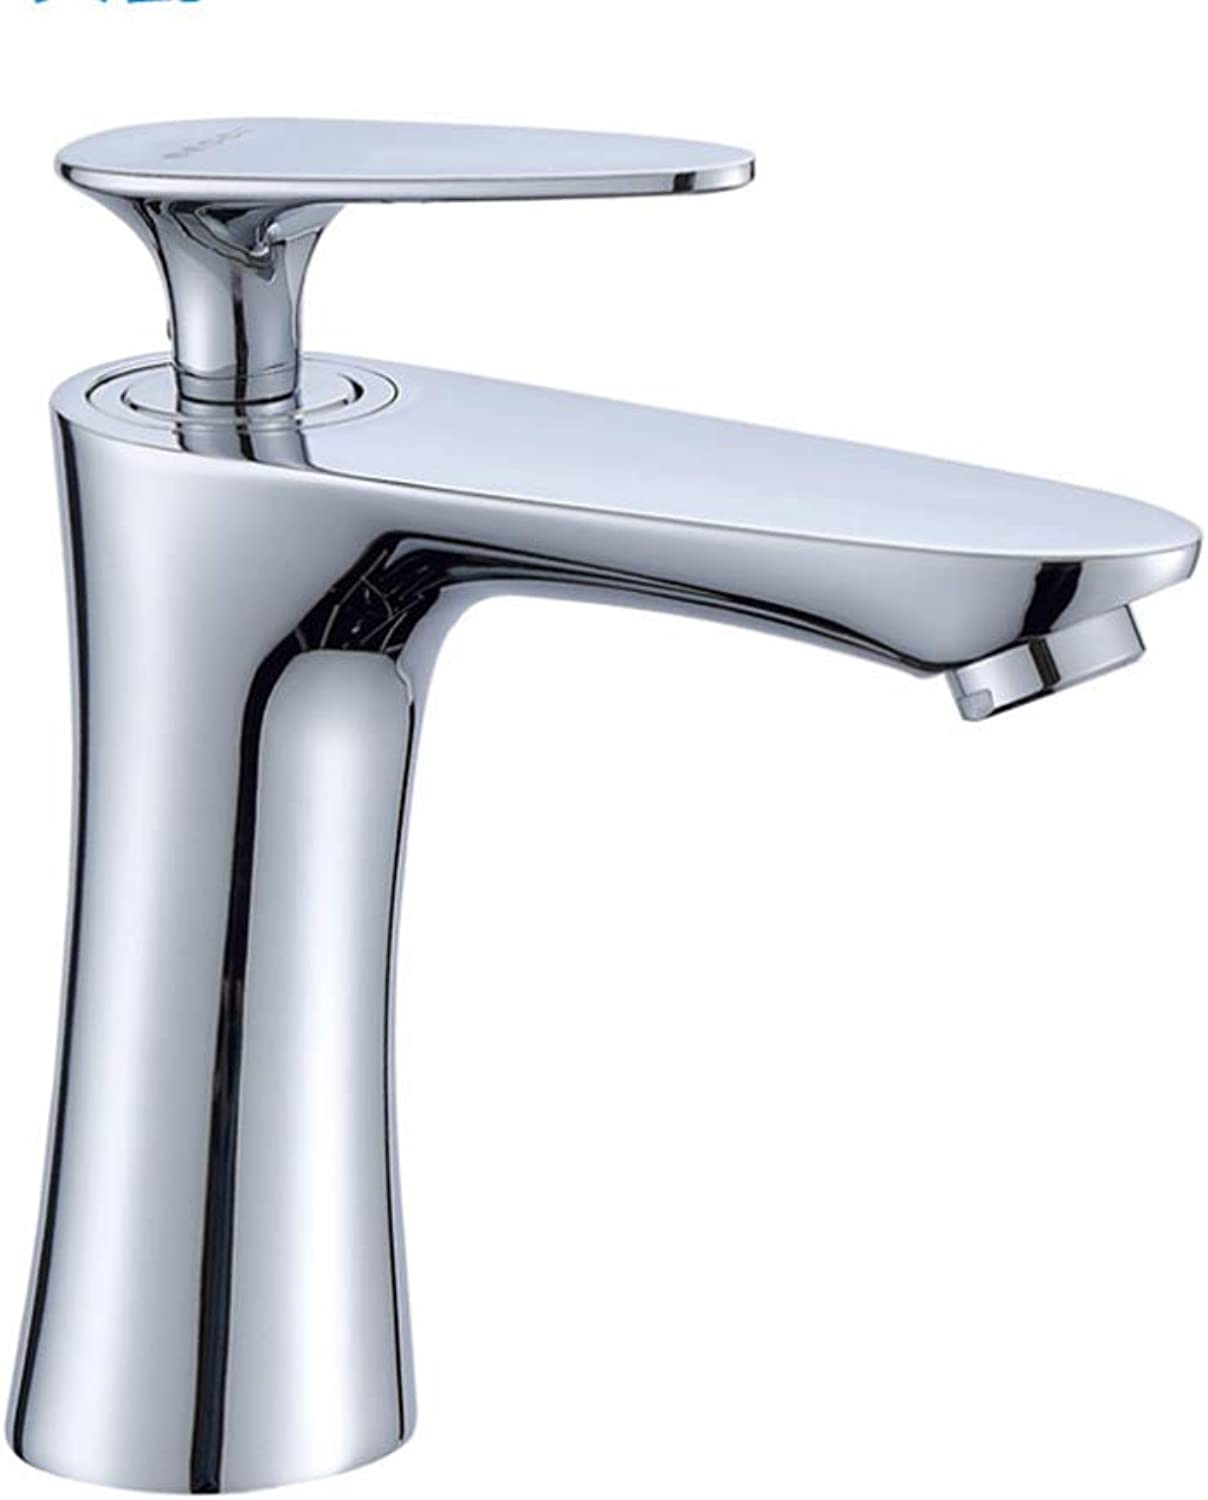 Basin Faucetcopper Basin Faucet Cold and Hot Faucet